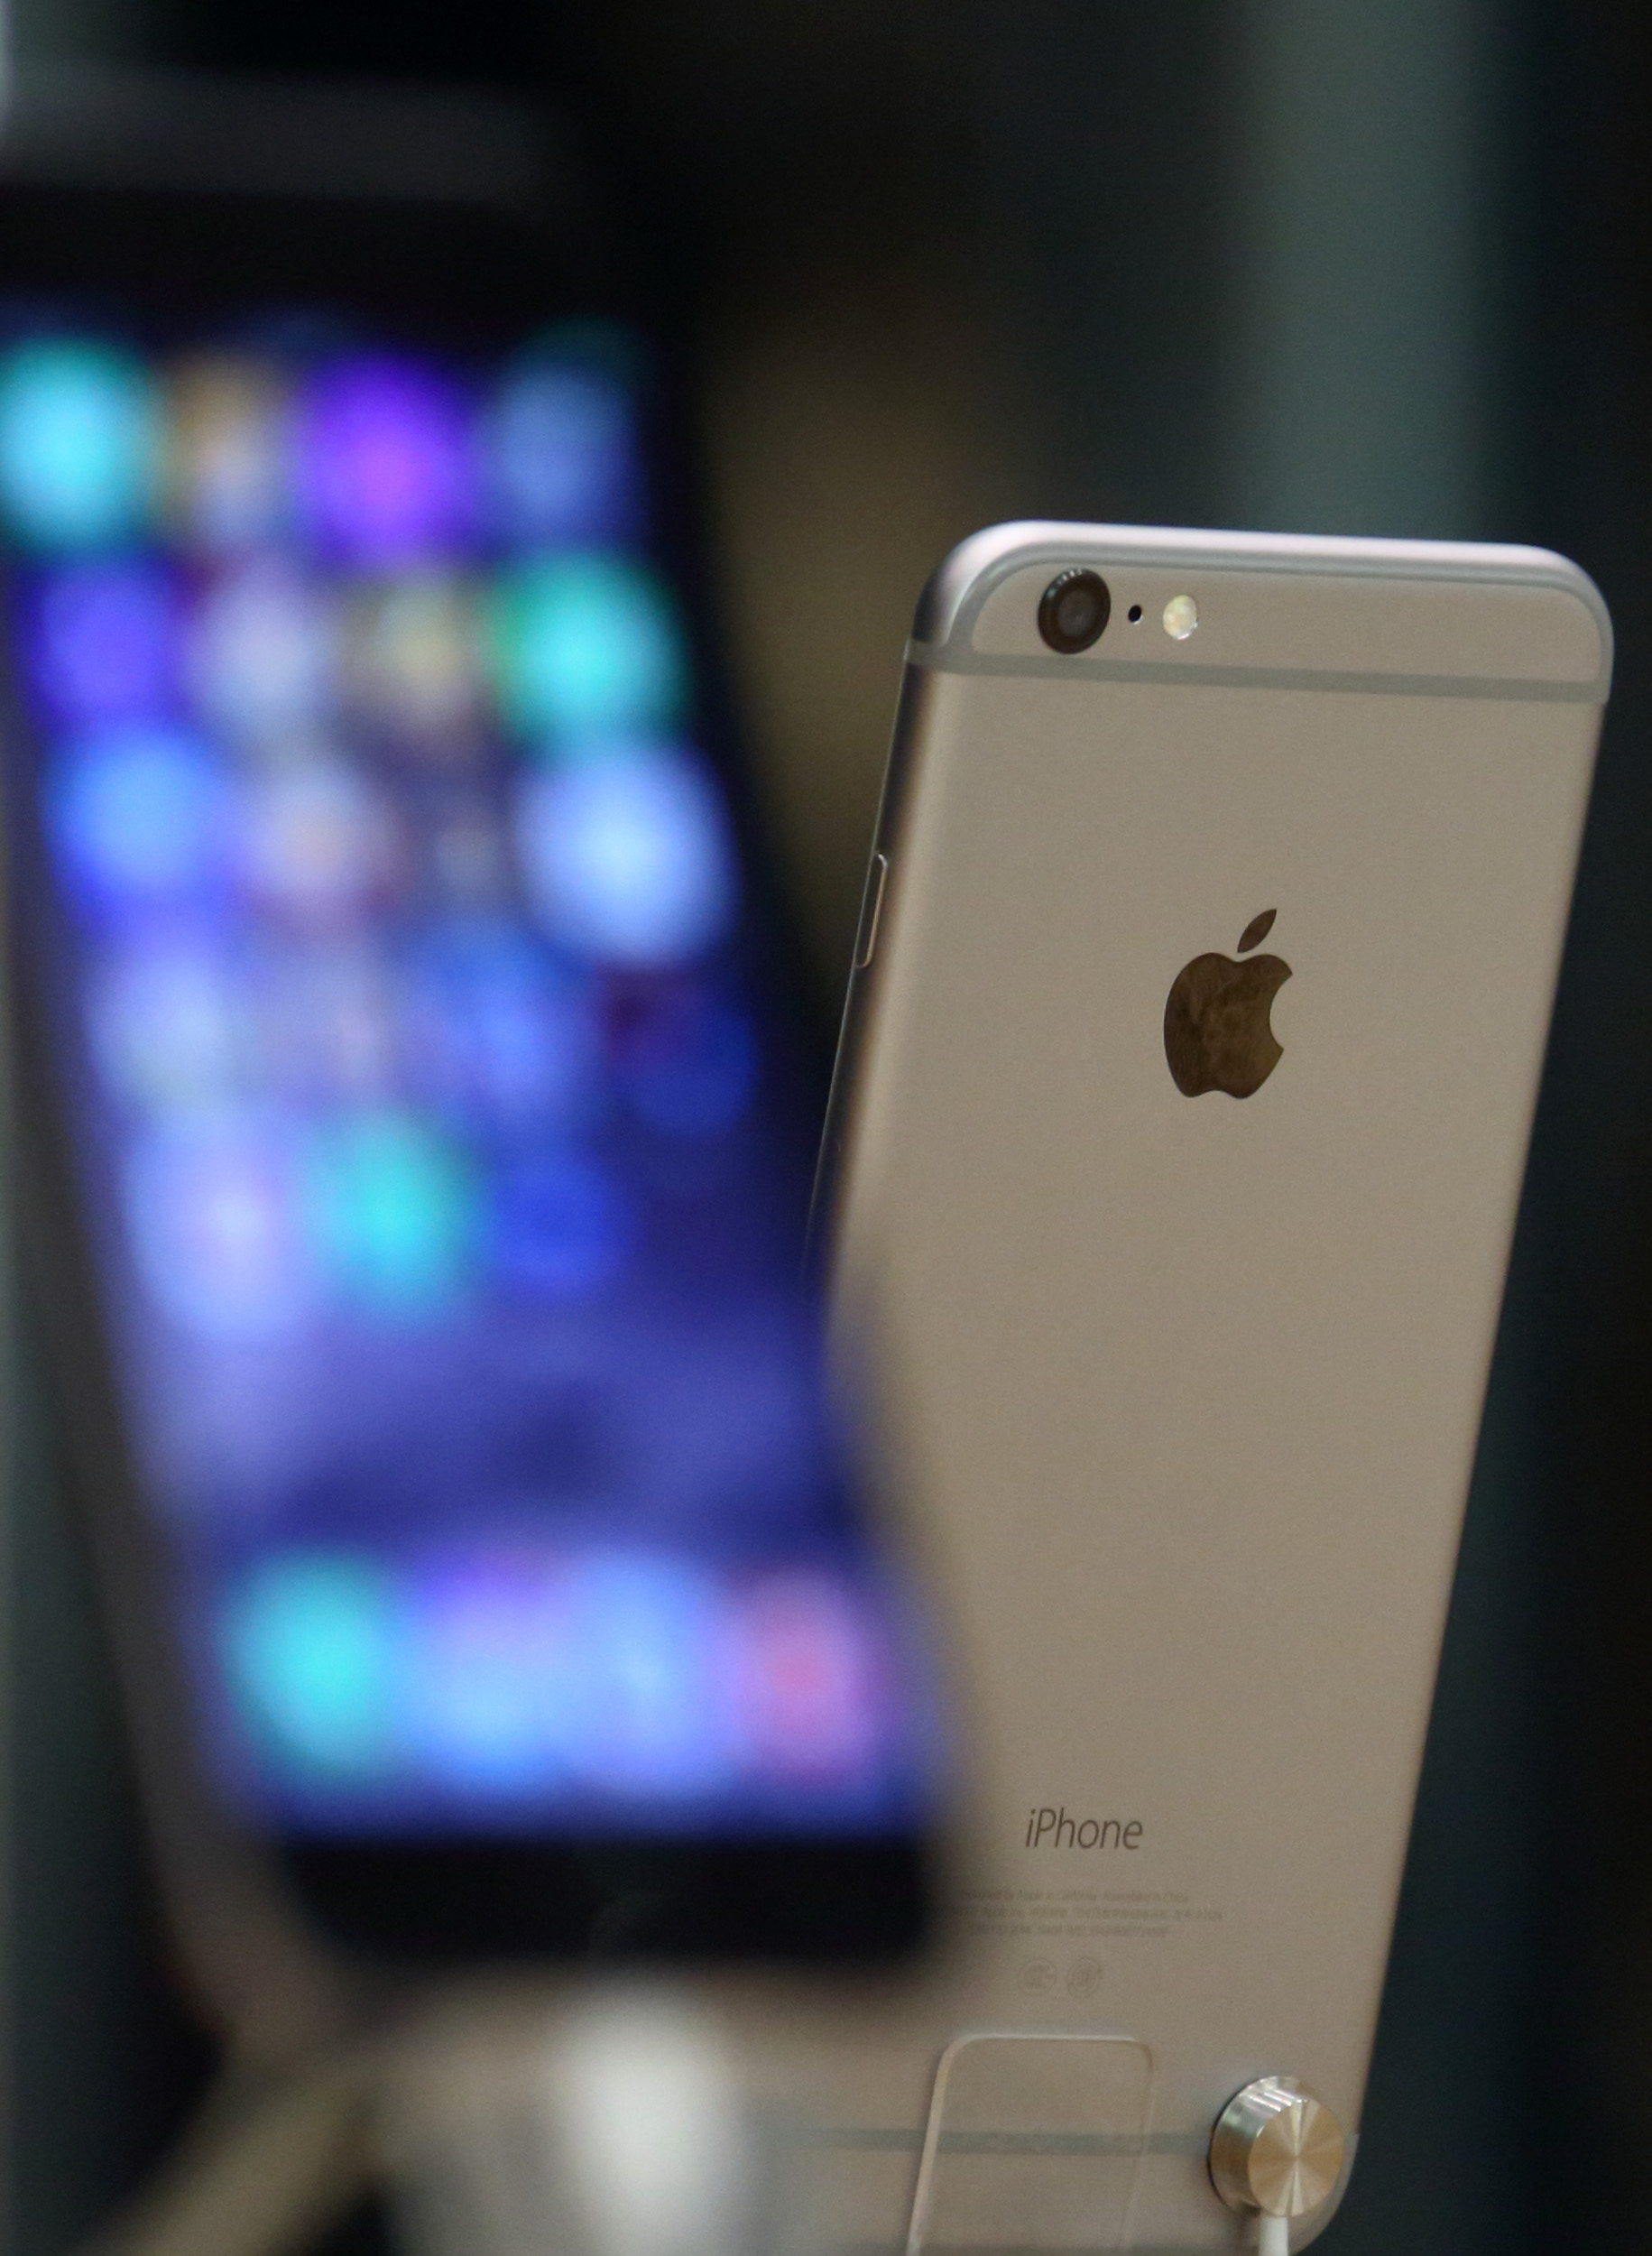 Apple's iPhone 6 is displayed at an Apple store in Beijing, China on Nov. 11, 2014.